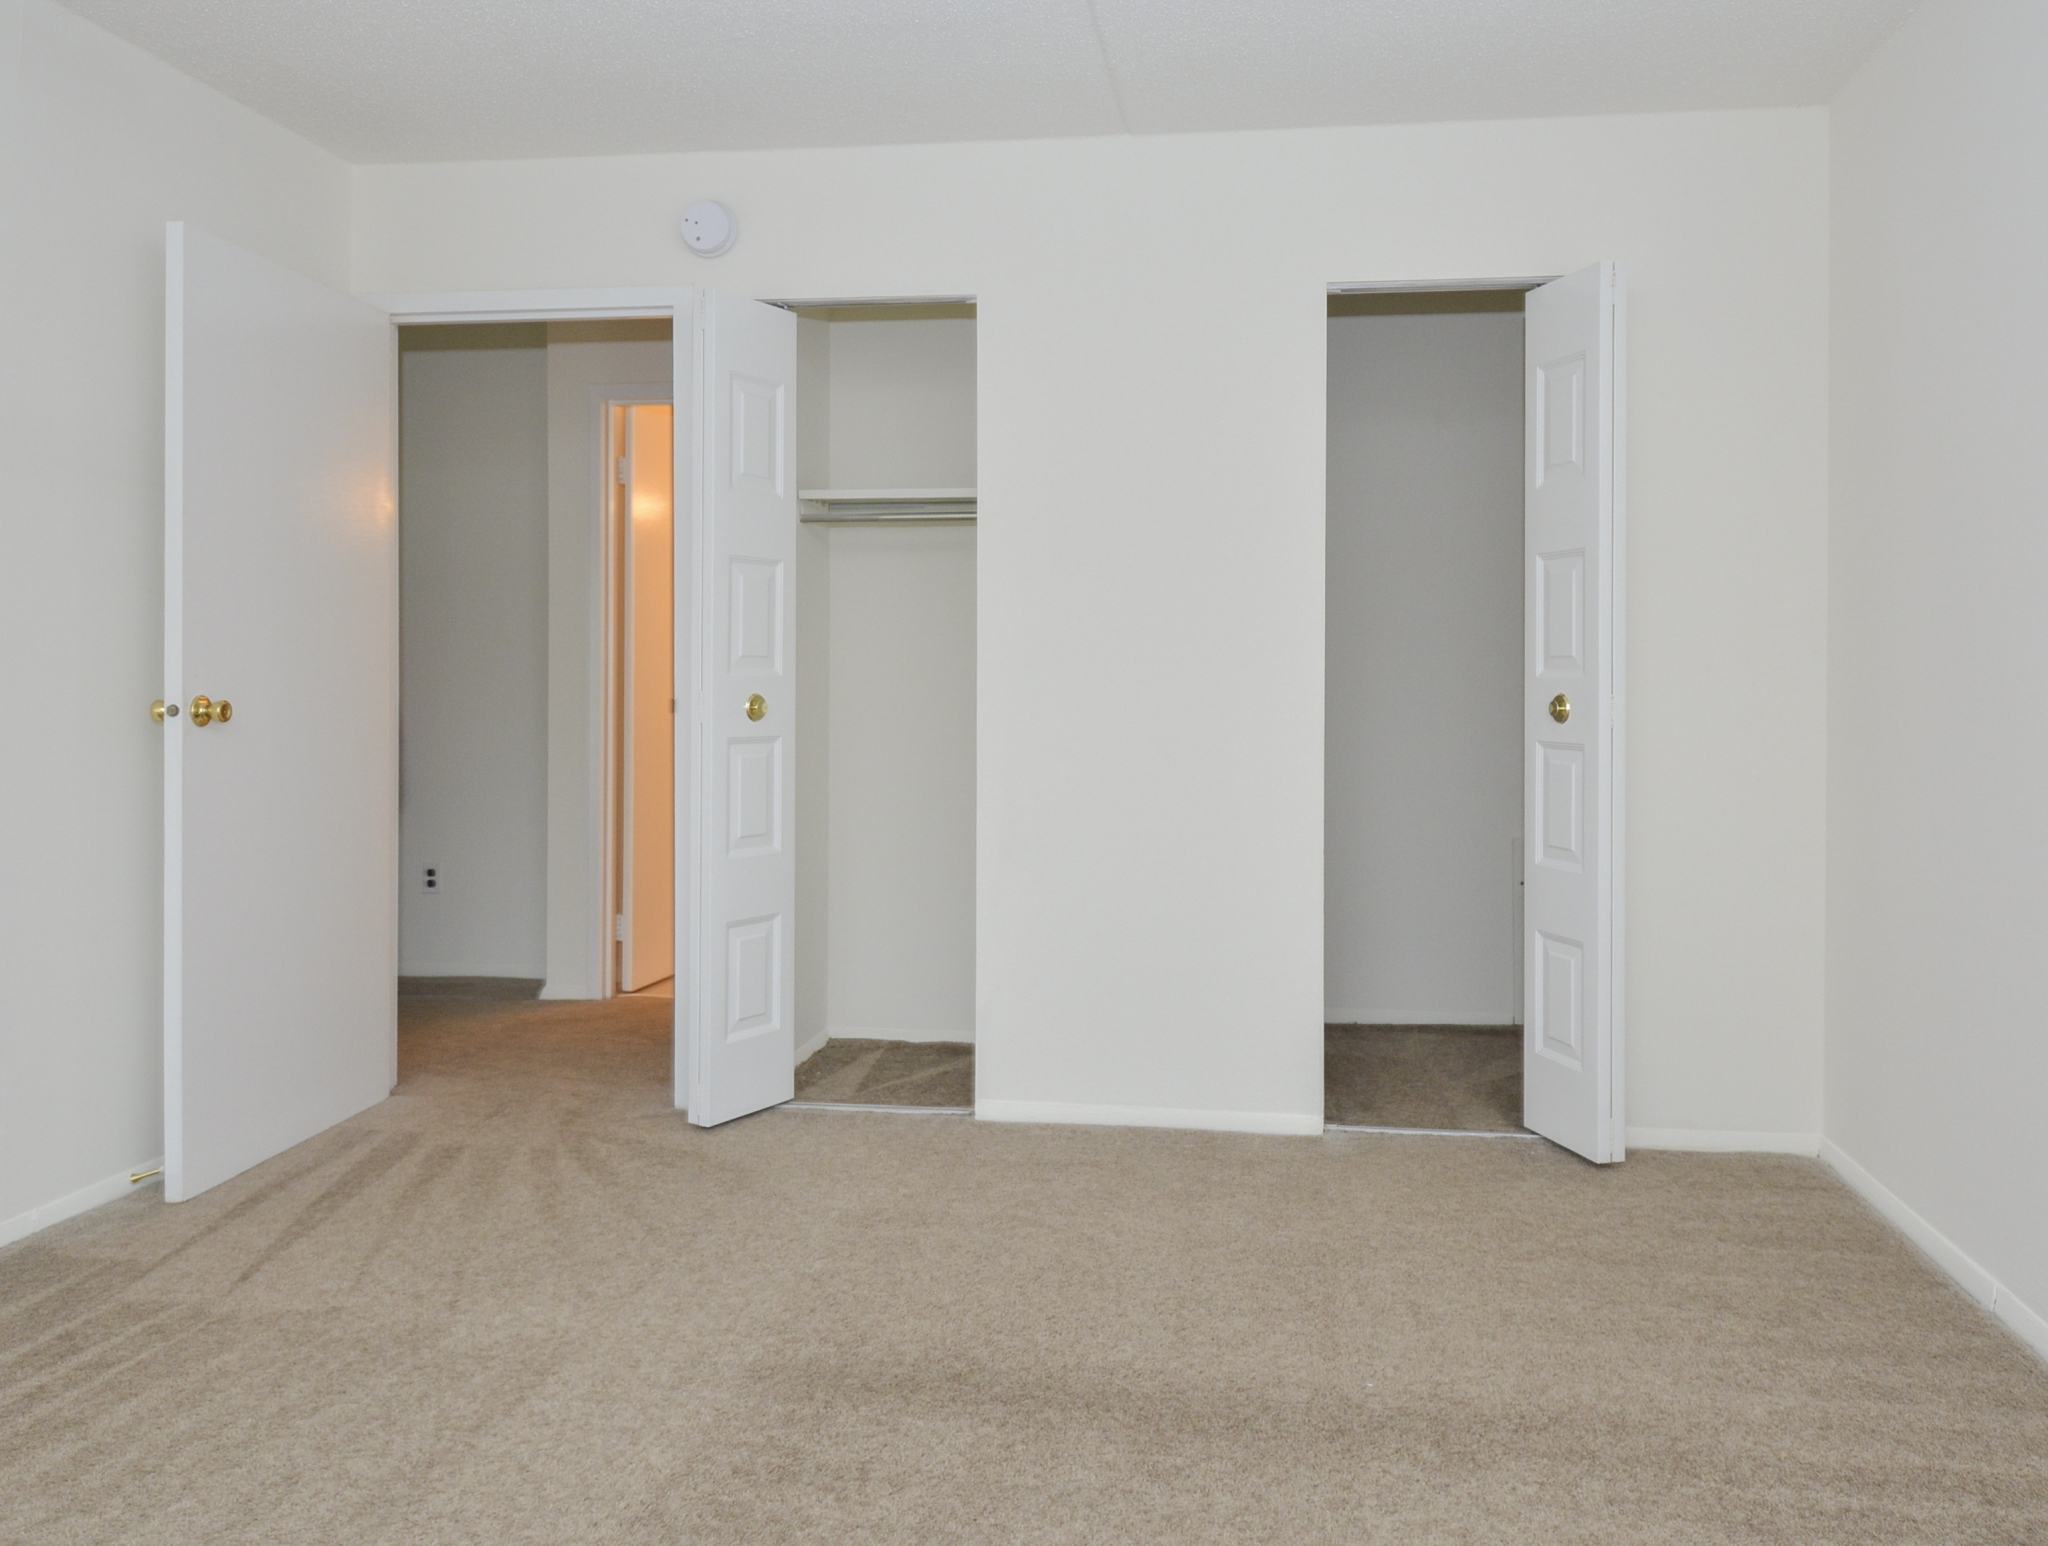 Spacious Closet | Apartments in Lansdowne, PA | Gladstone Towers Apartments